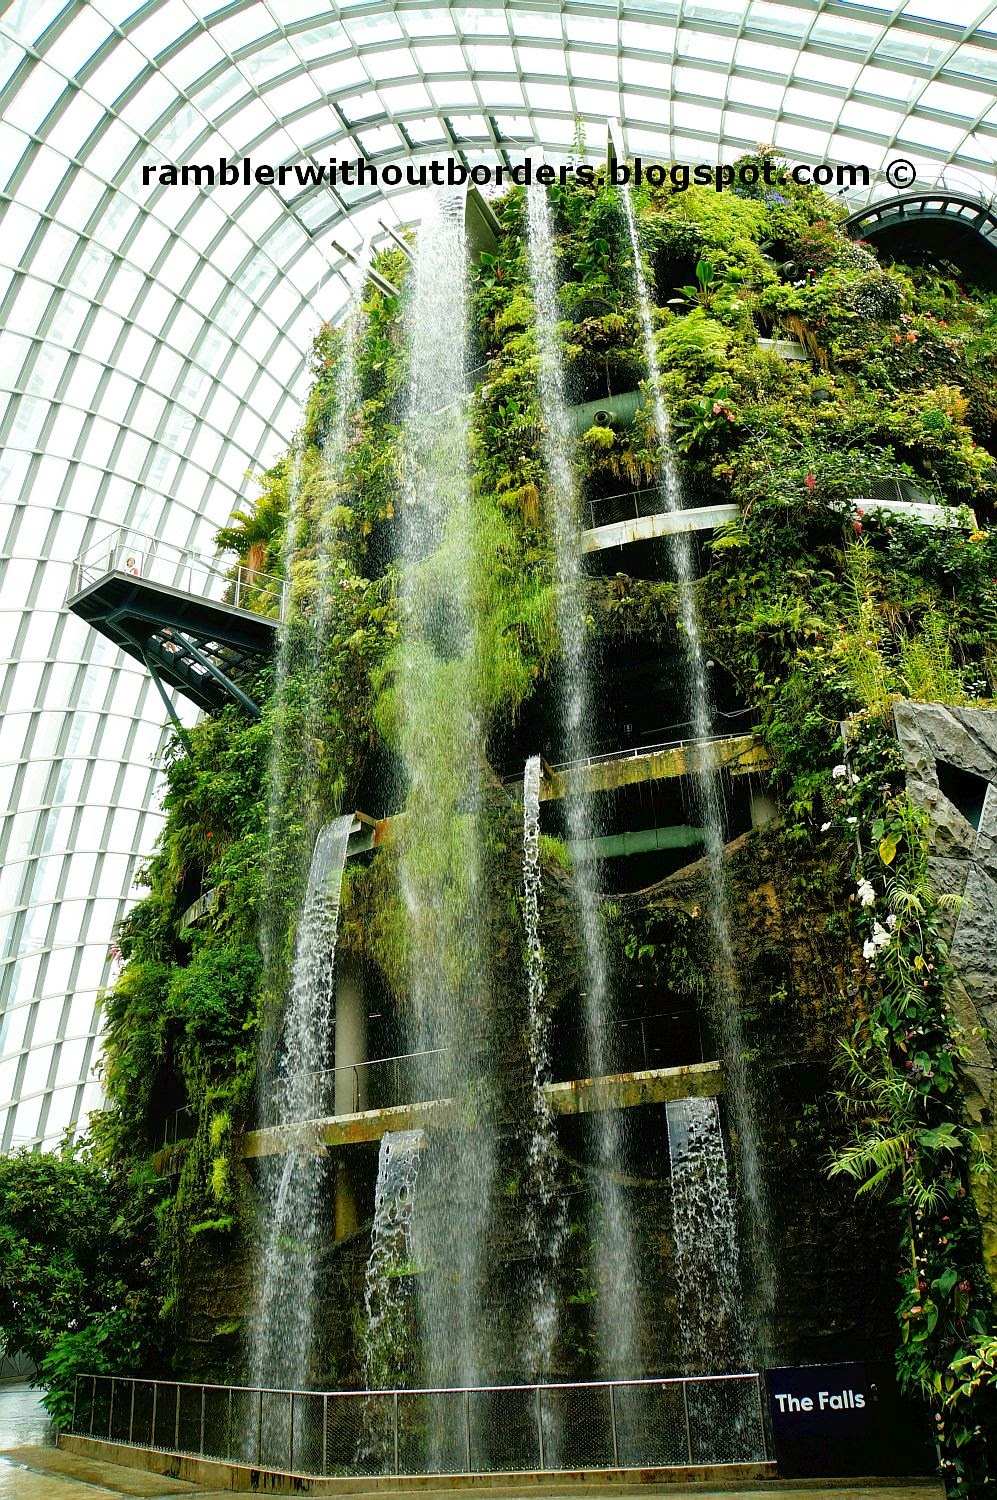 Waterfall from the man-made Cloud Mountain, Gardens by the Bay, Singapore